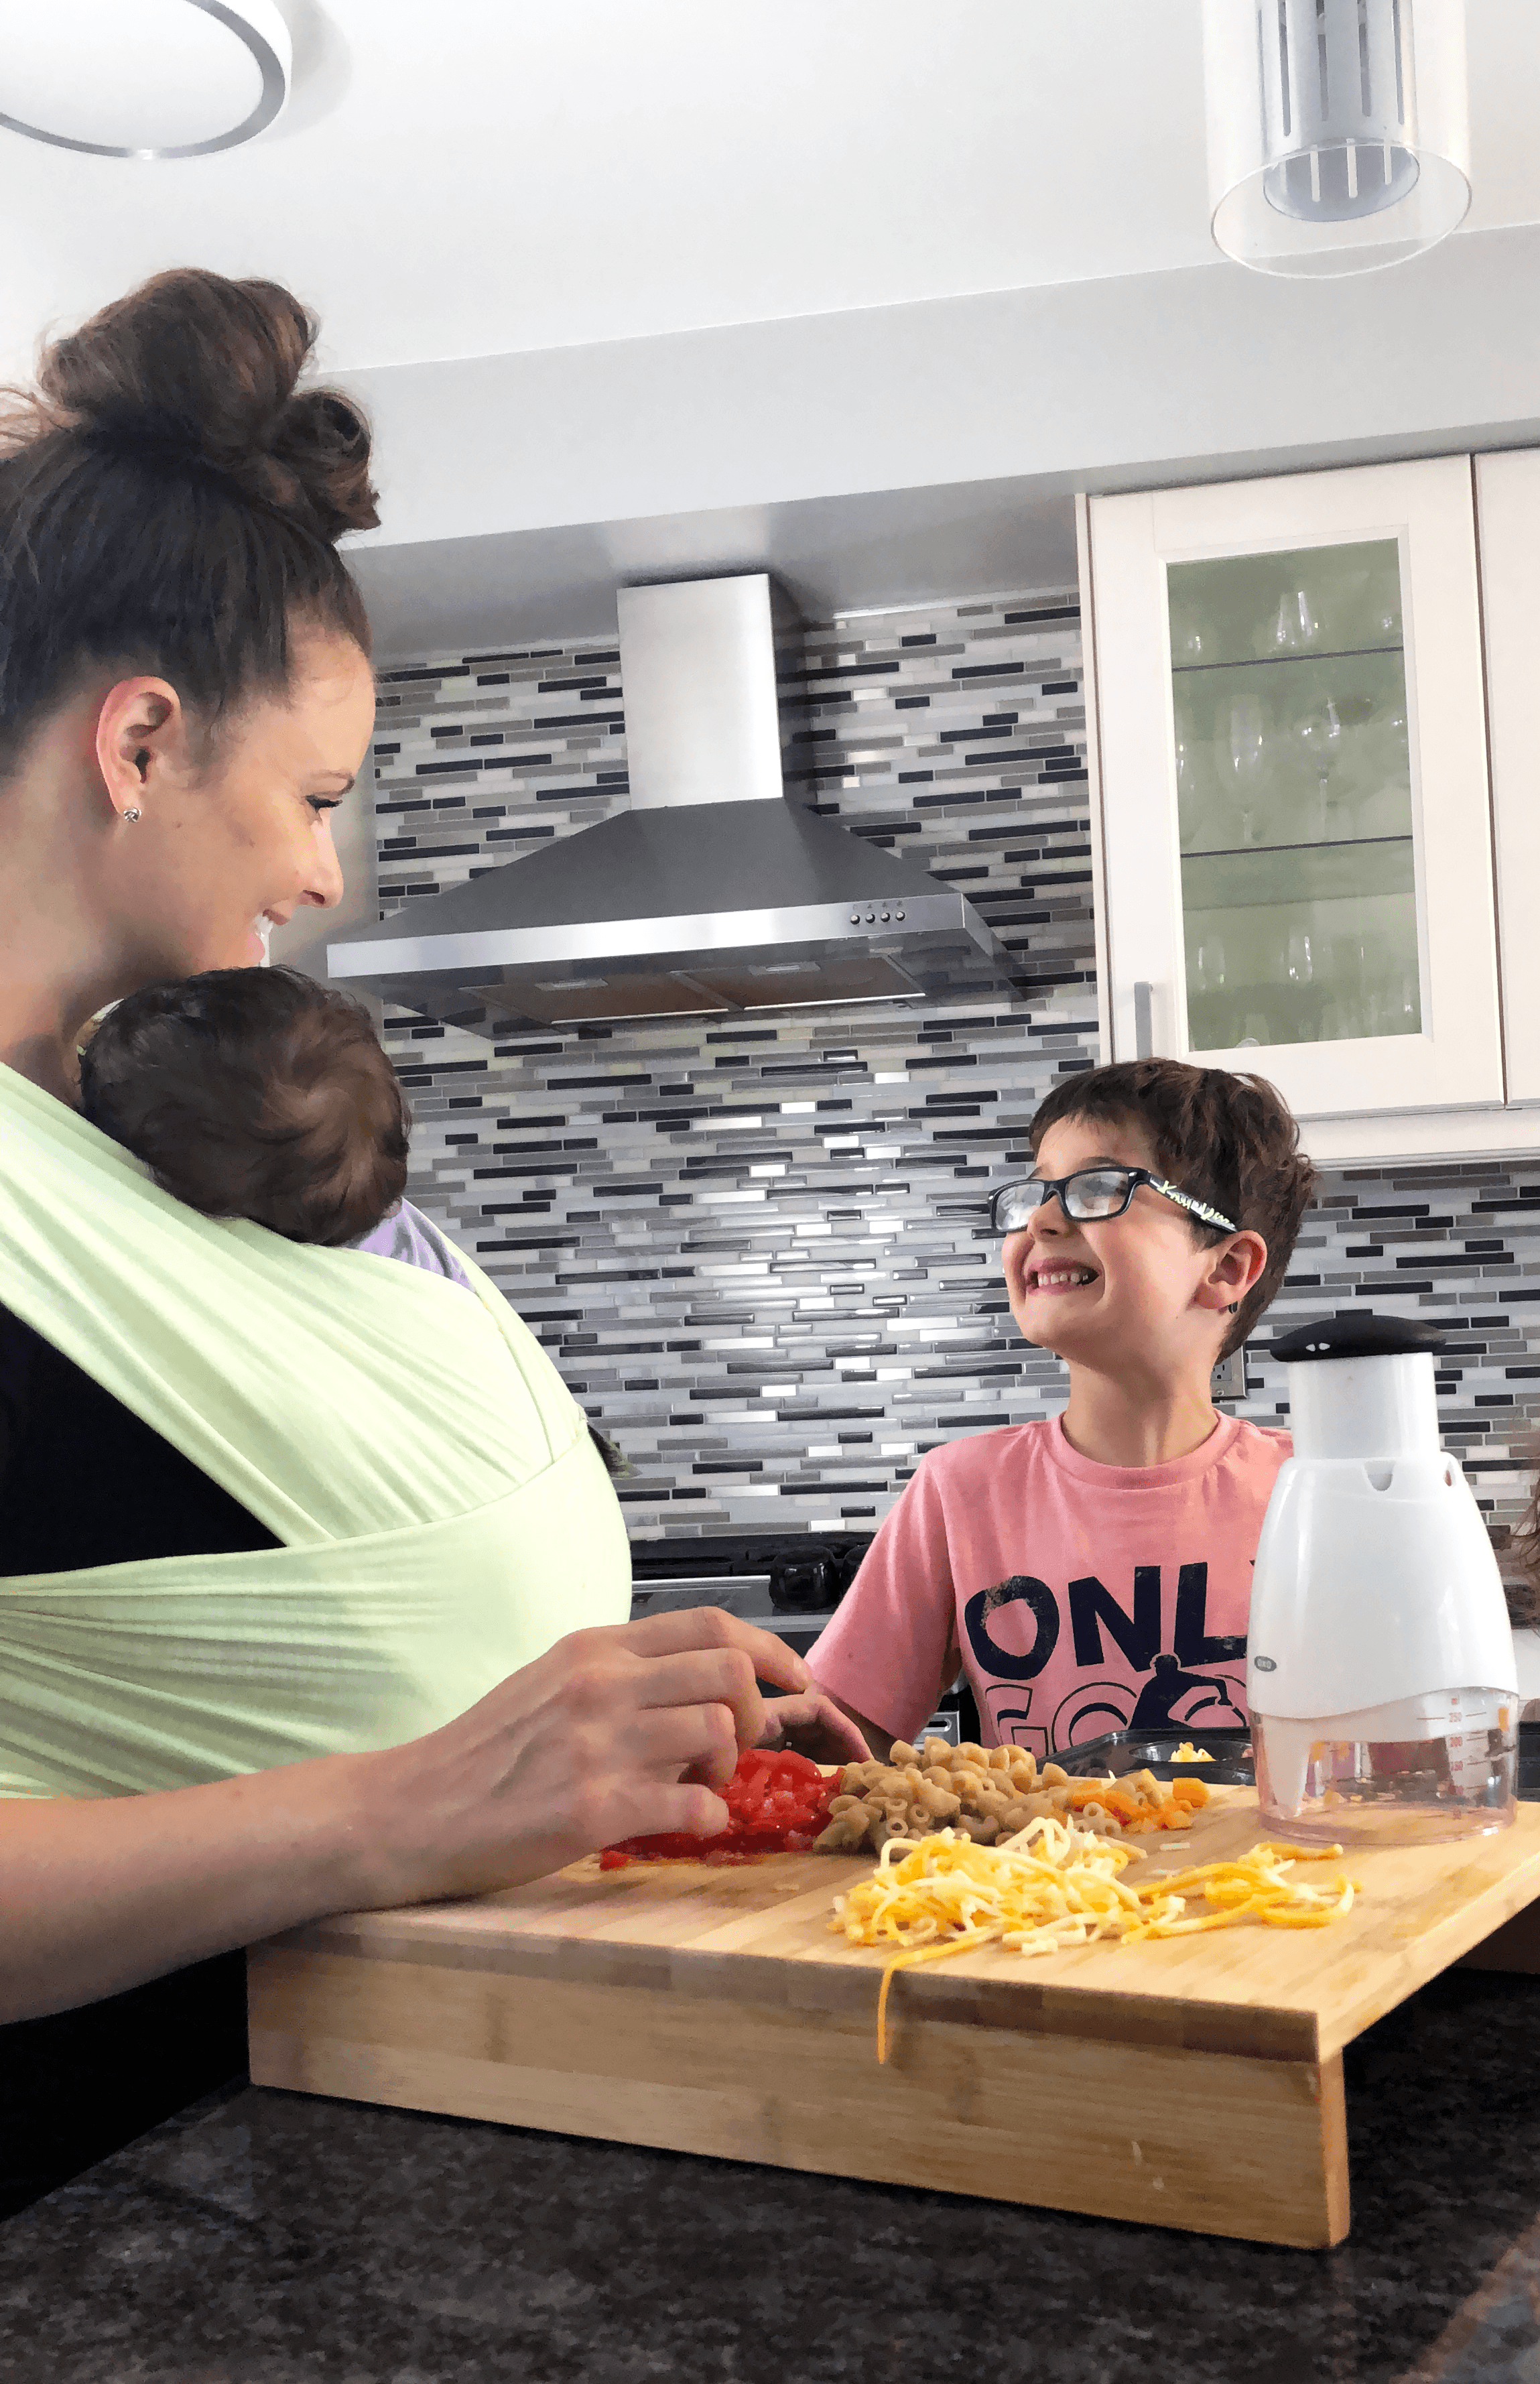 mom and child smiling at each other doing meal prep